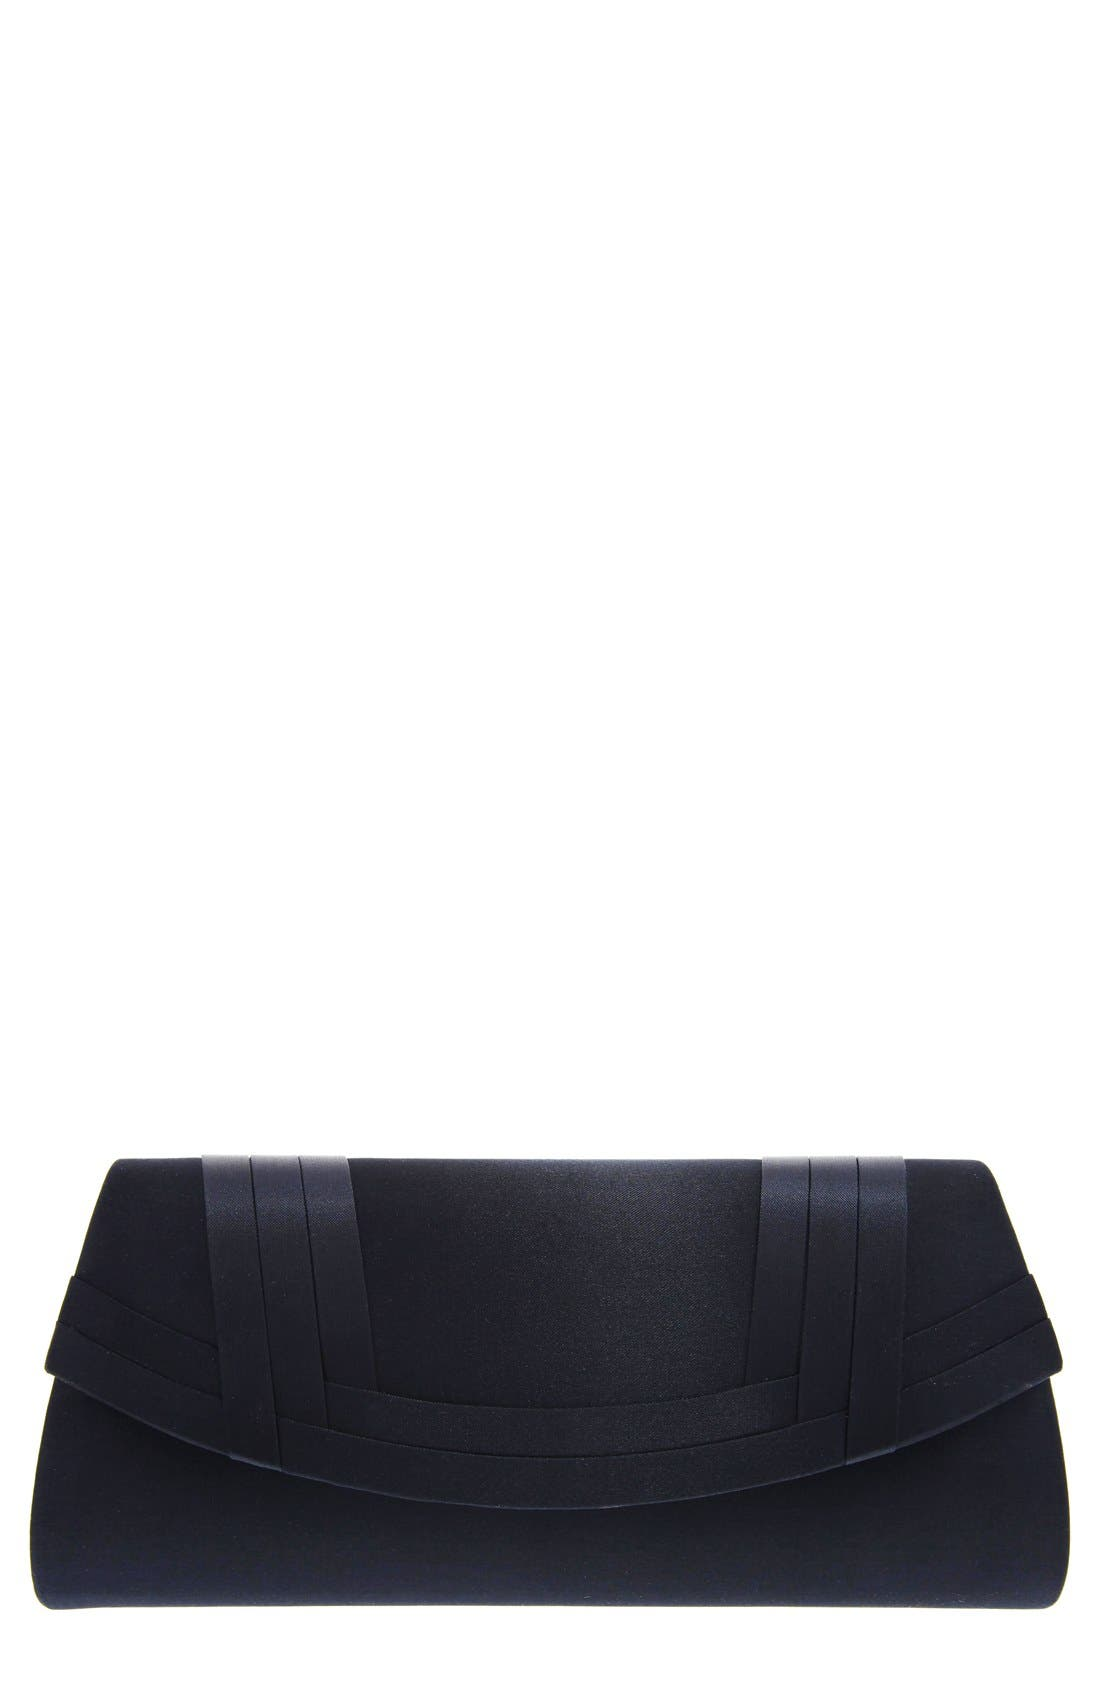 Alternate Image 1 Selected - Nina Avis Pleated Classic Clutch